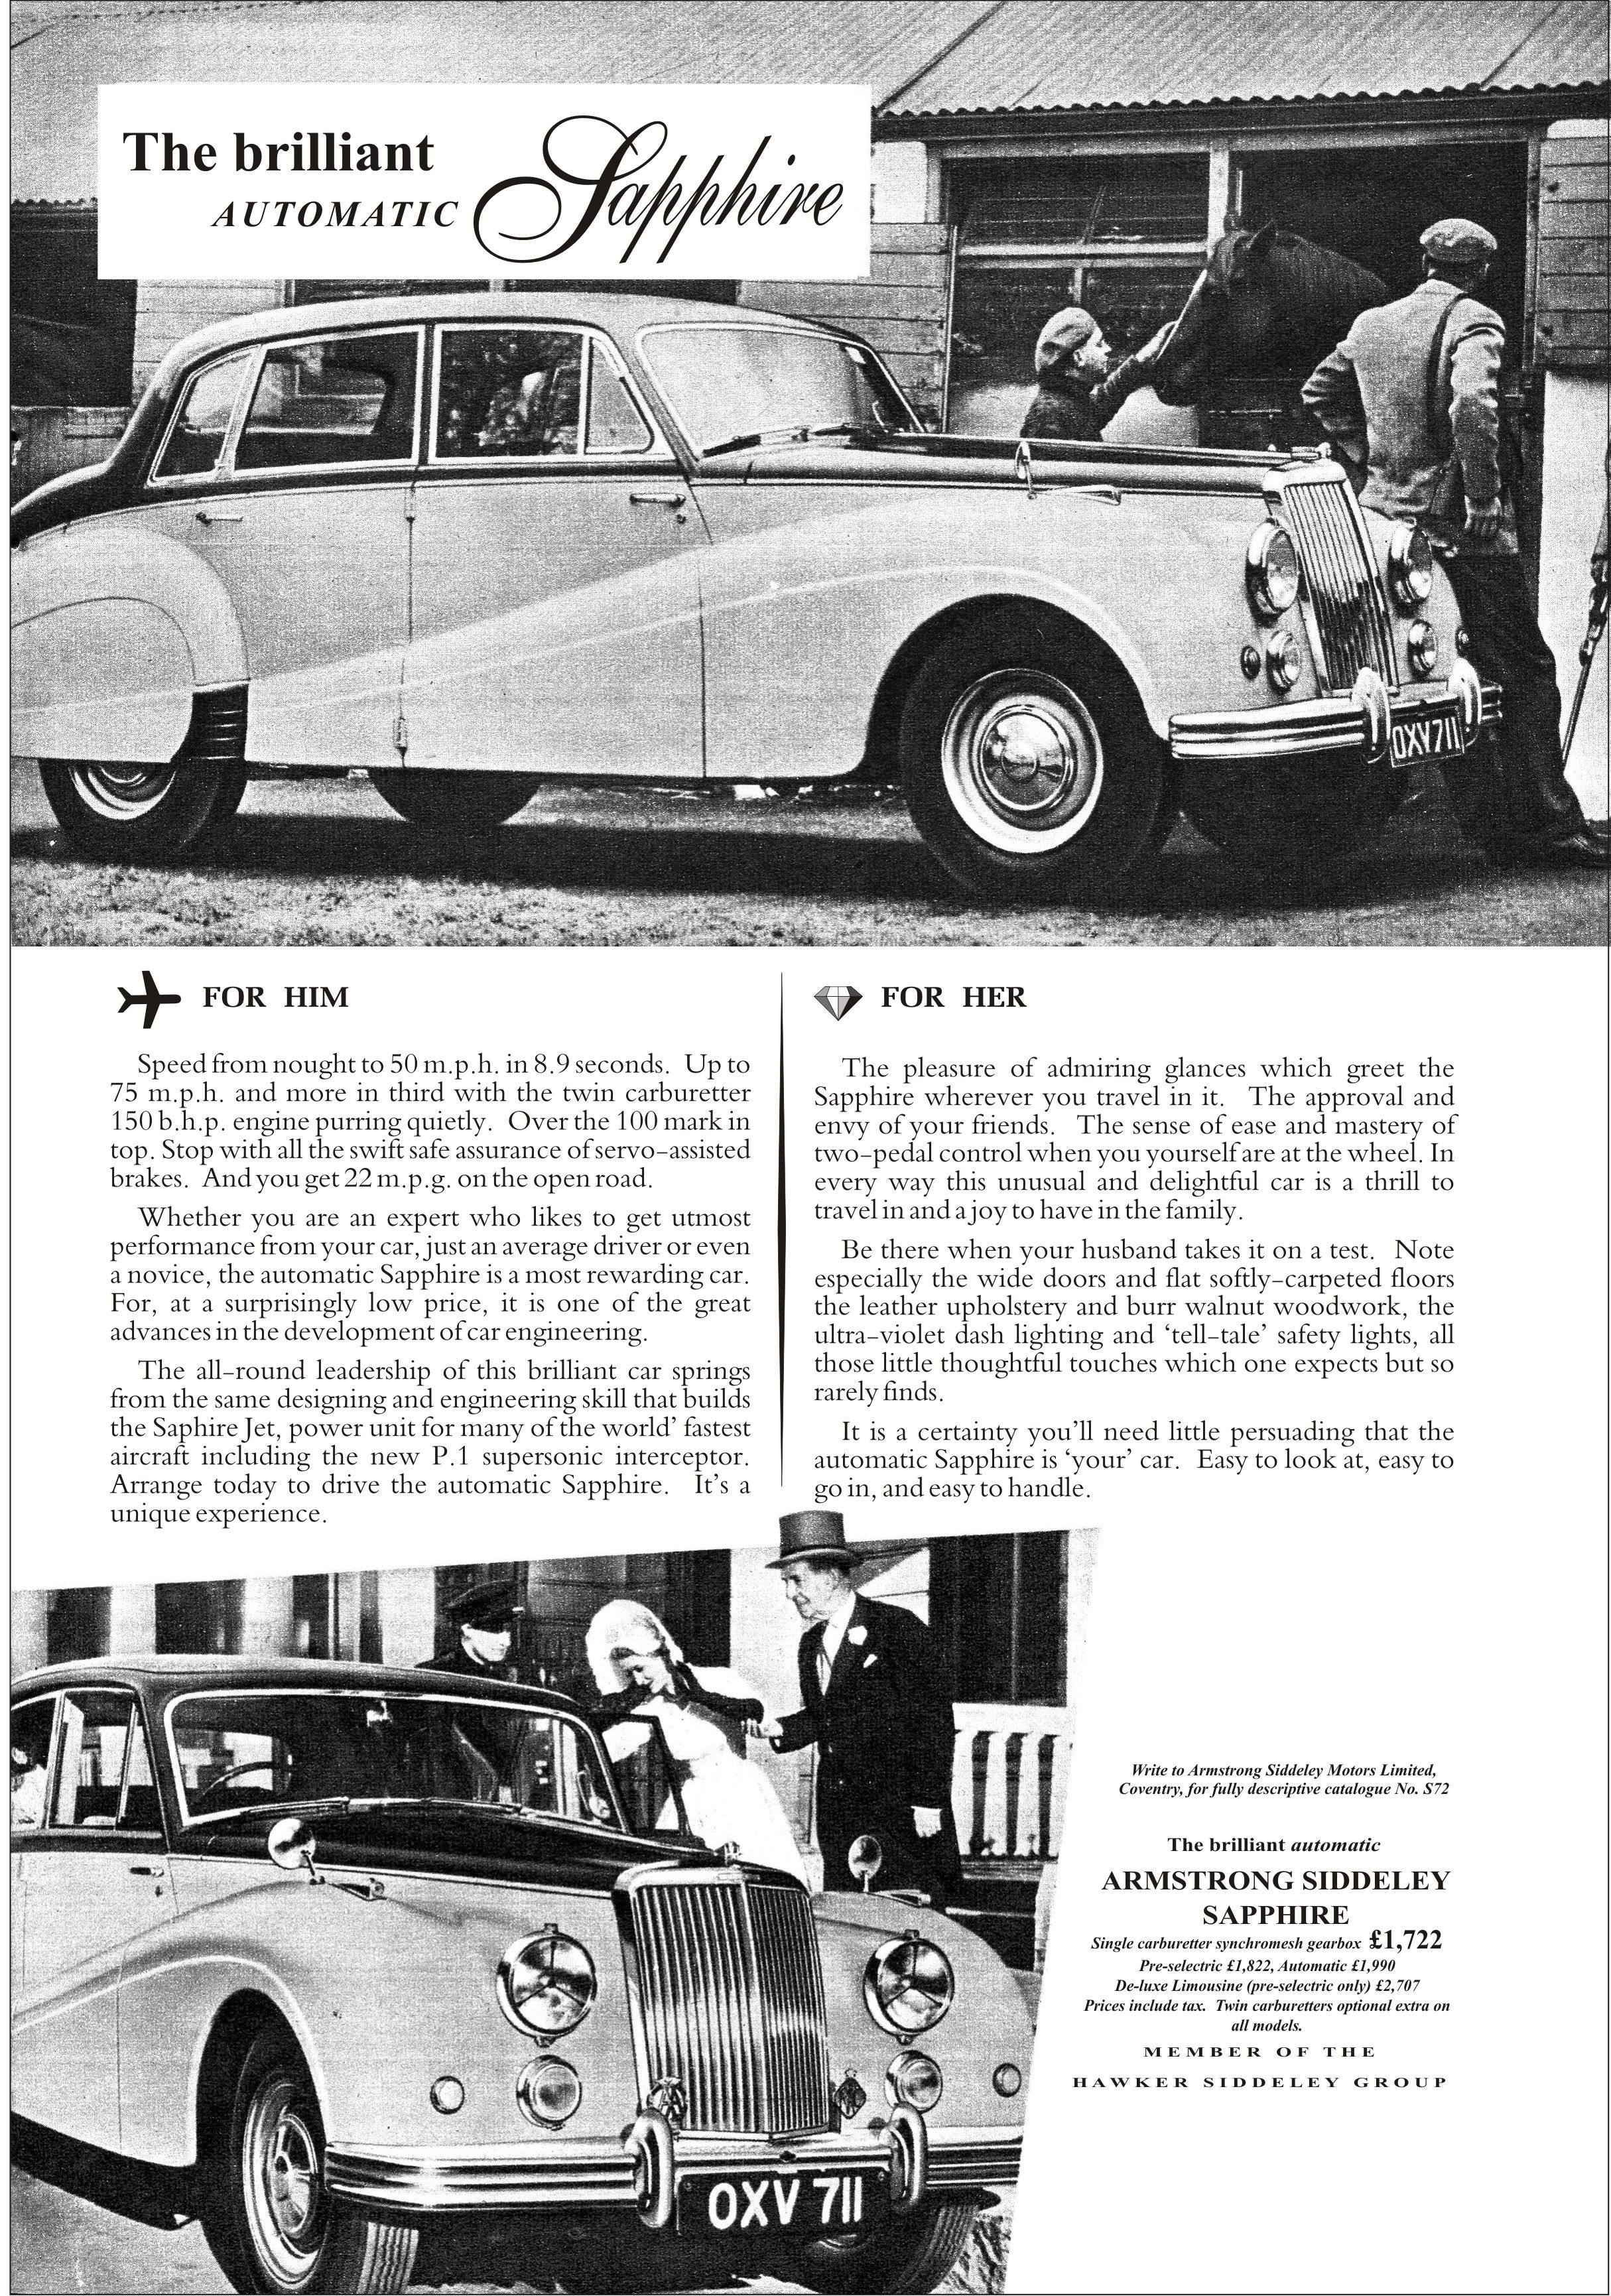 Armstrong Siddeley Autocar Car Advert 1955 Armstrong Siddeley